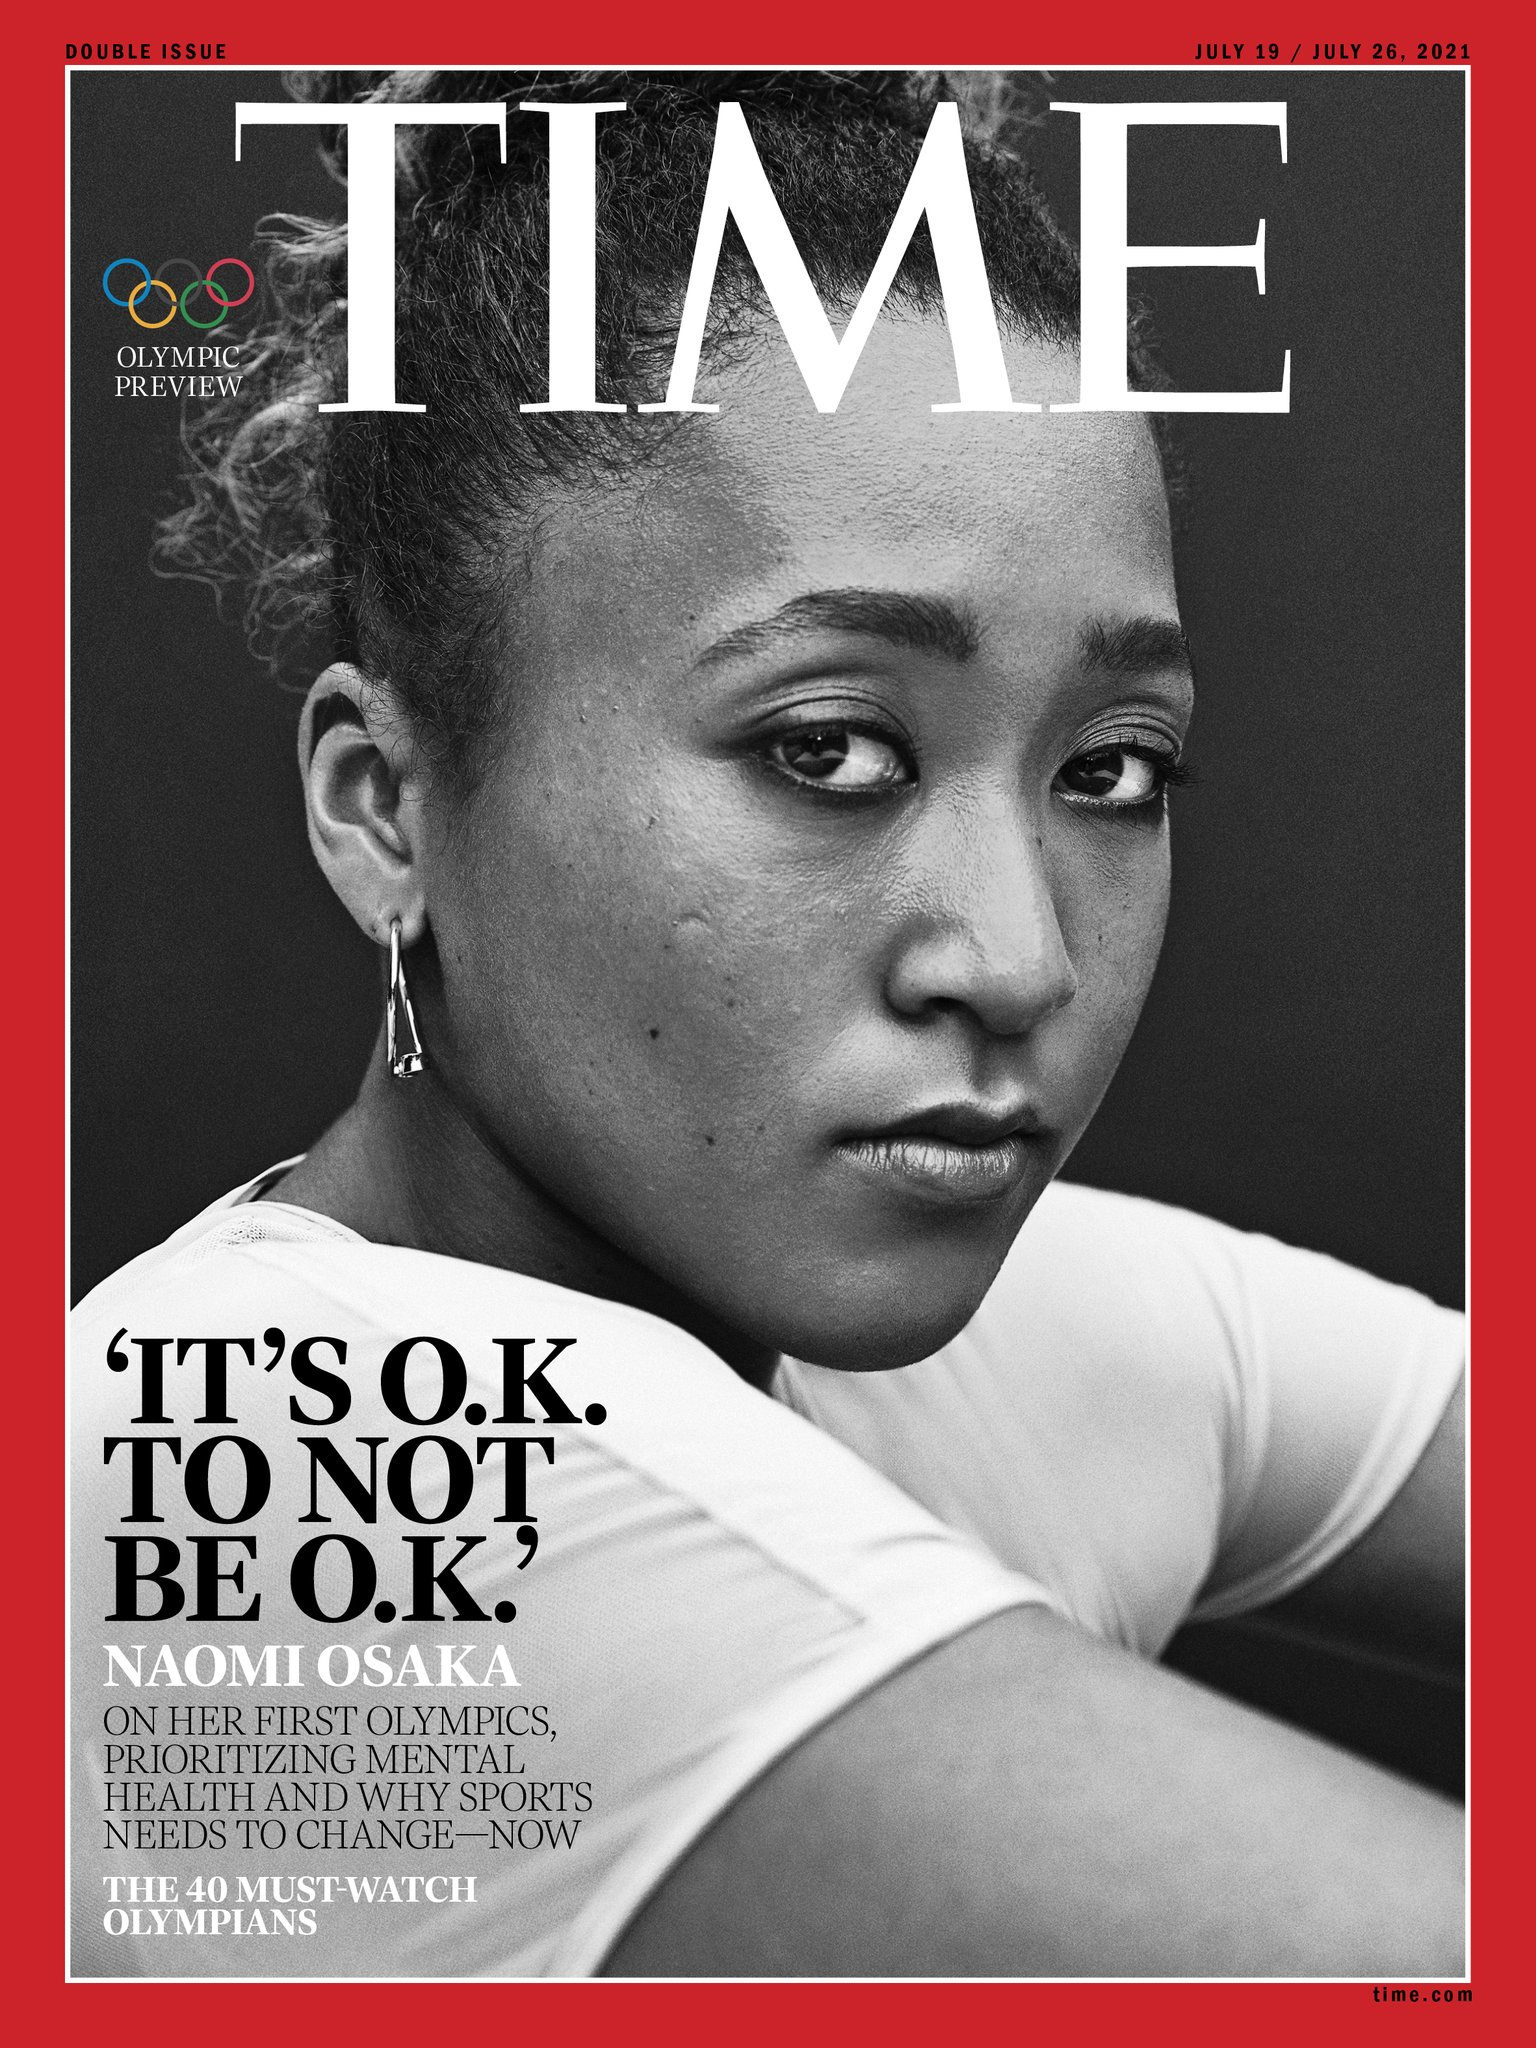 naomi-osaka-writes-for-time-on-putting-mental-health-first-its-o-k-not-to-be-o-k